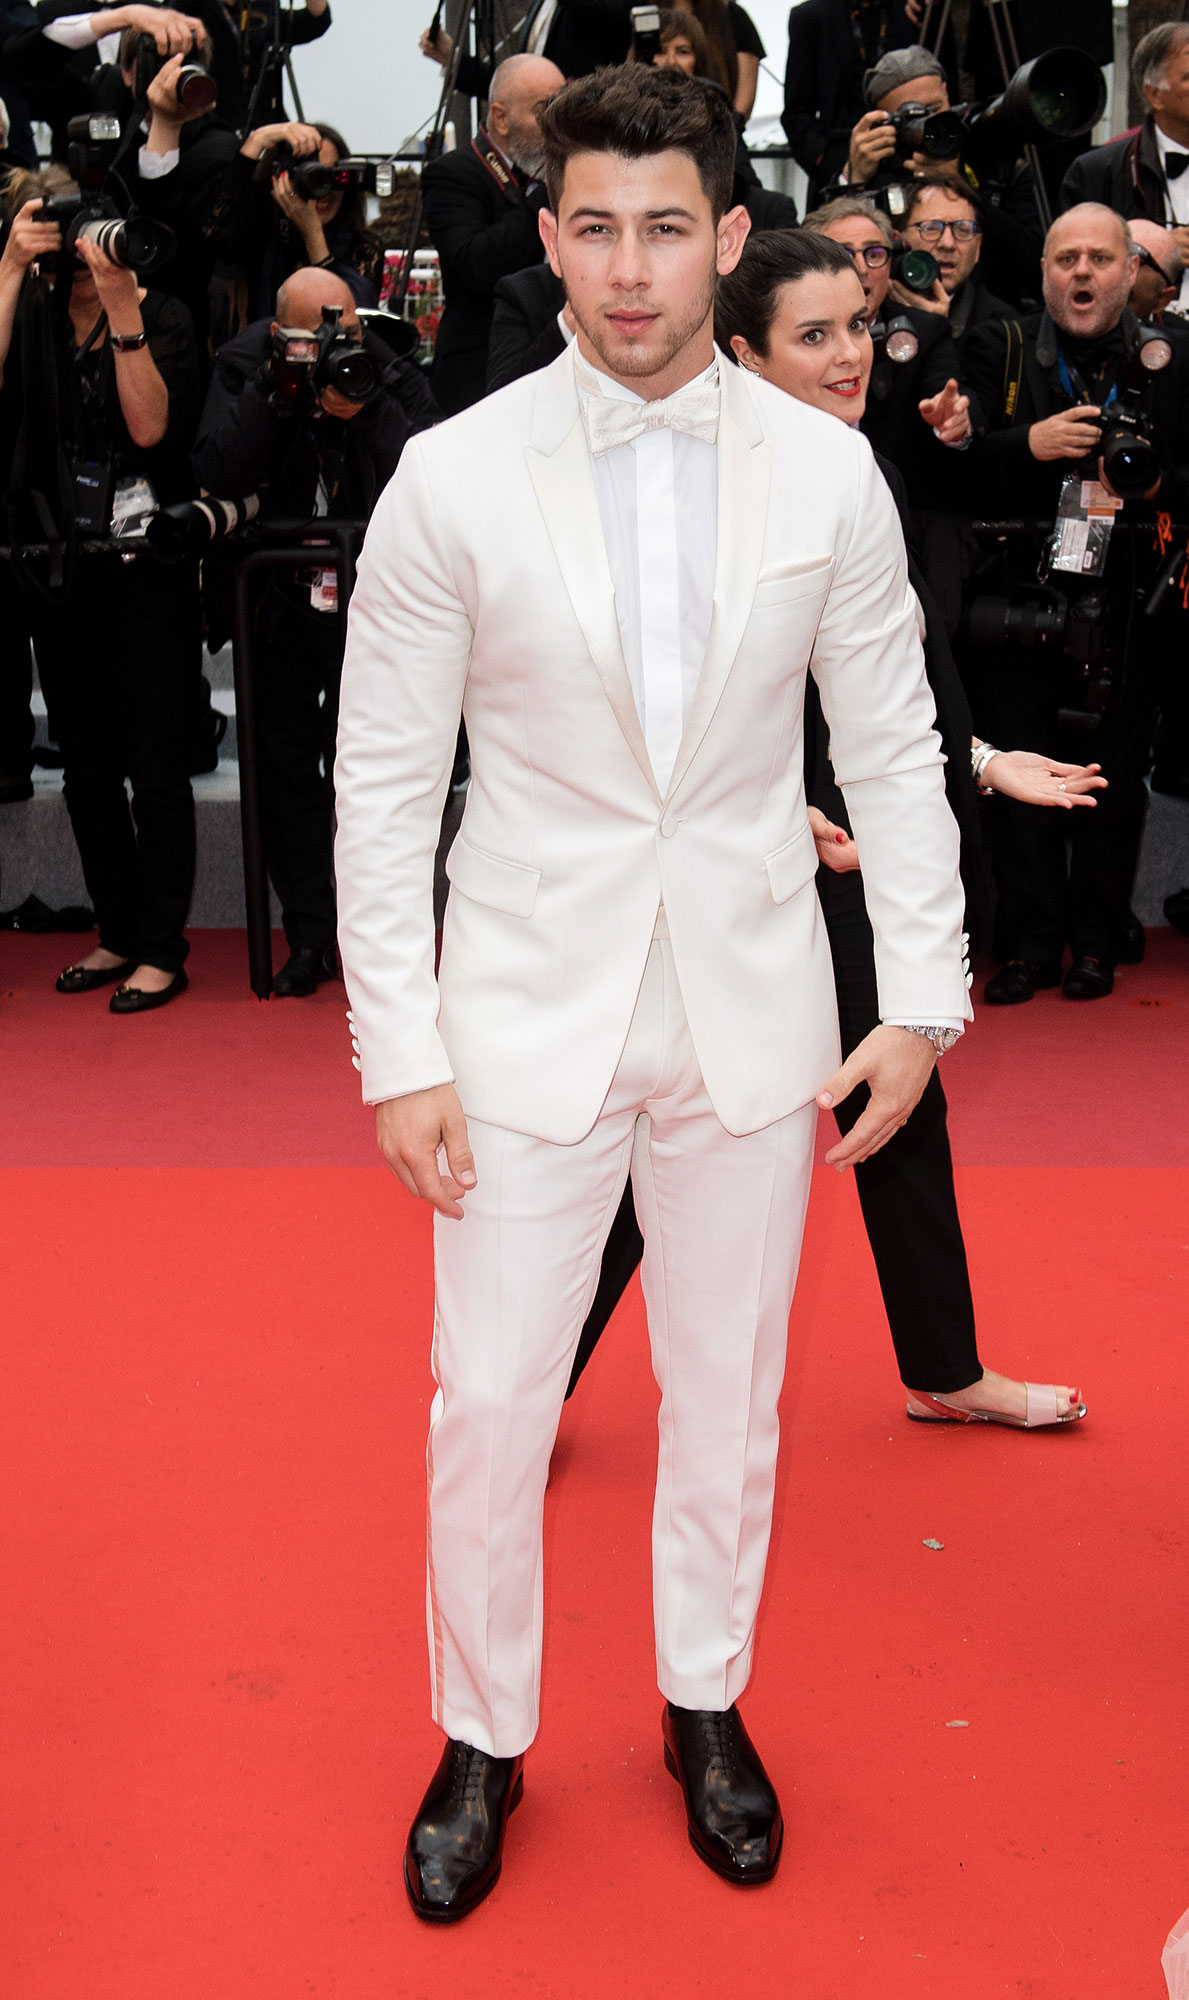 Nick Jonas Cannes Film Festival 2019 Most Stylish Guys Red Carpet - The Jonas Brother accessorized his all-white-everything ensemble with black brogues and Chopard jewels at the Les Plus Belles Annees d'Une Vie screening on Saturday, May 18.